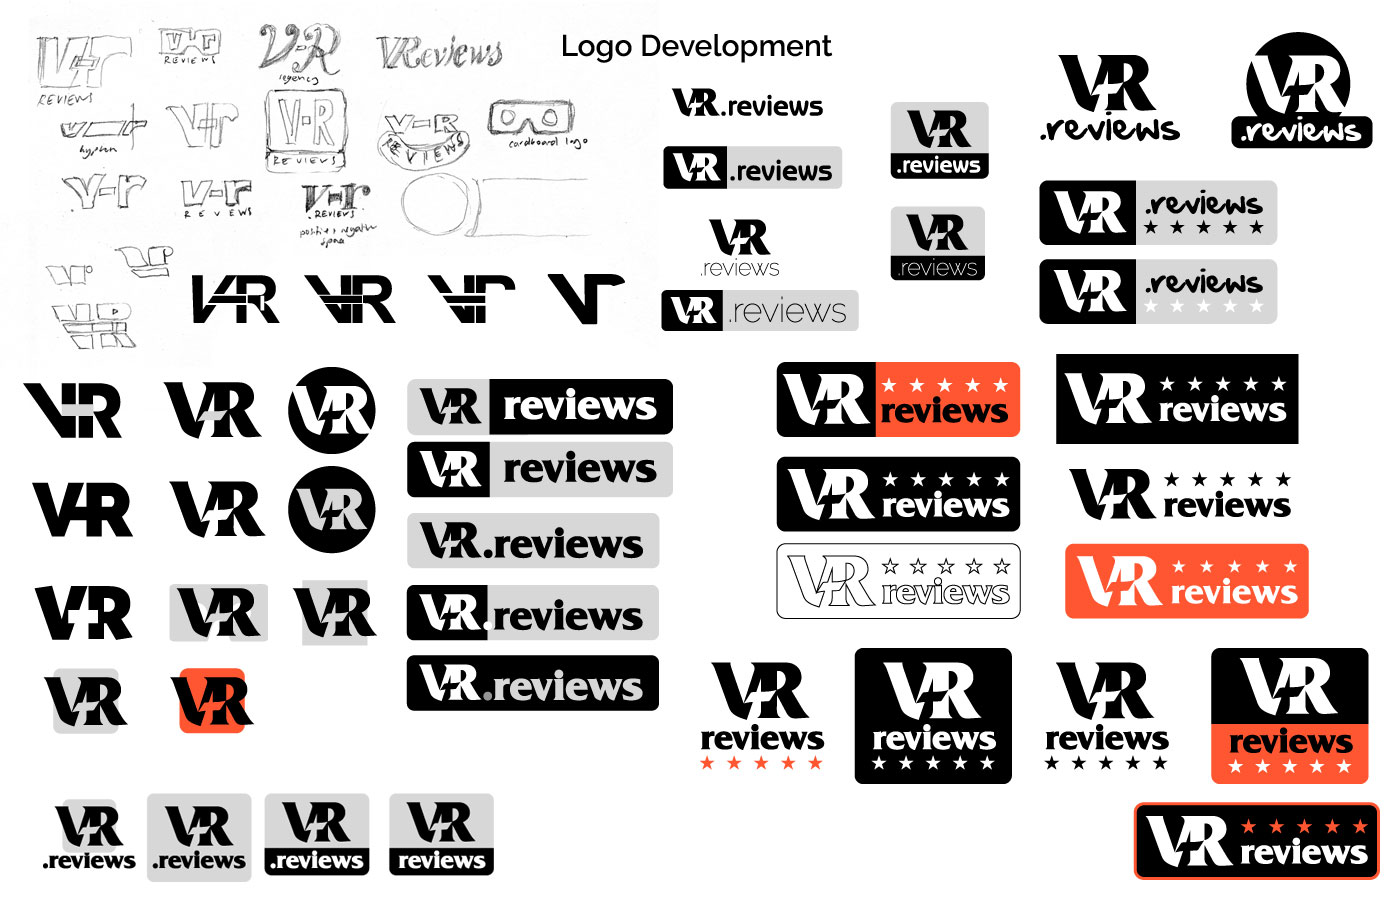 v-r reviews - logo development